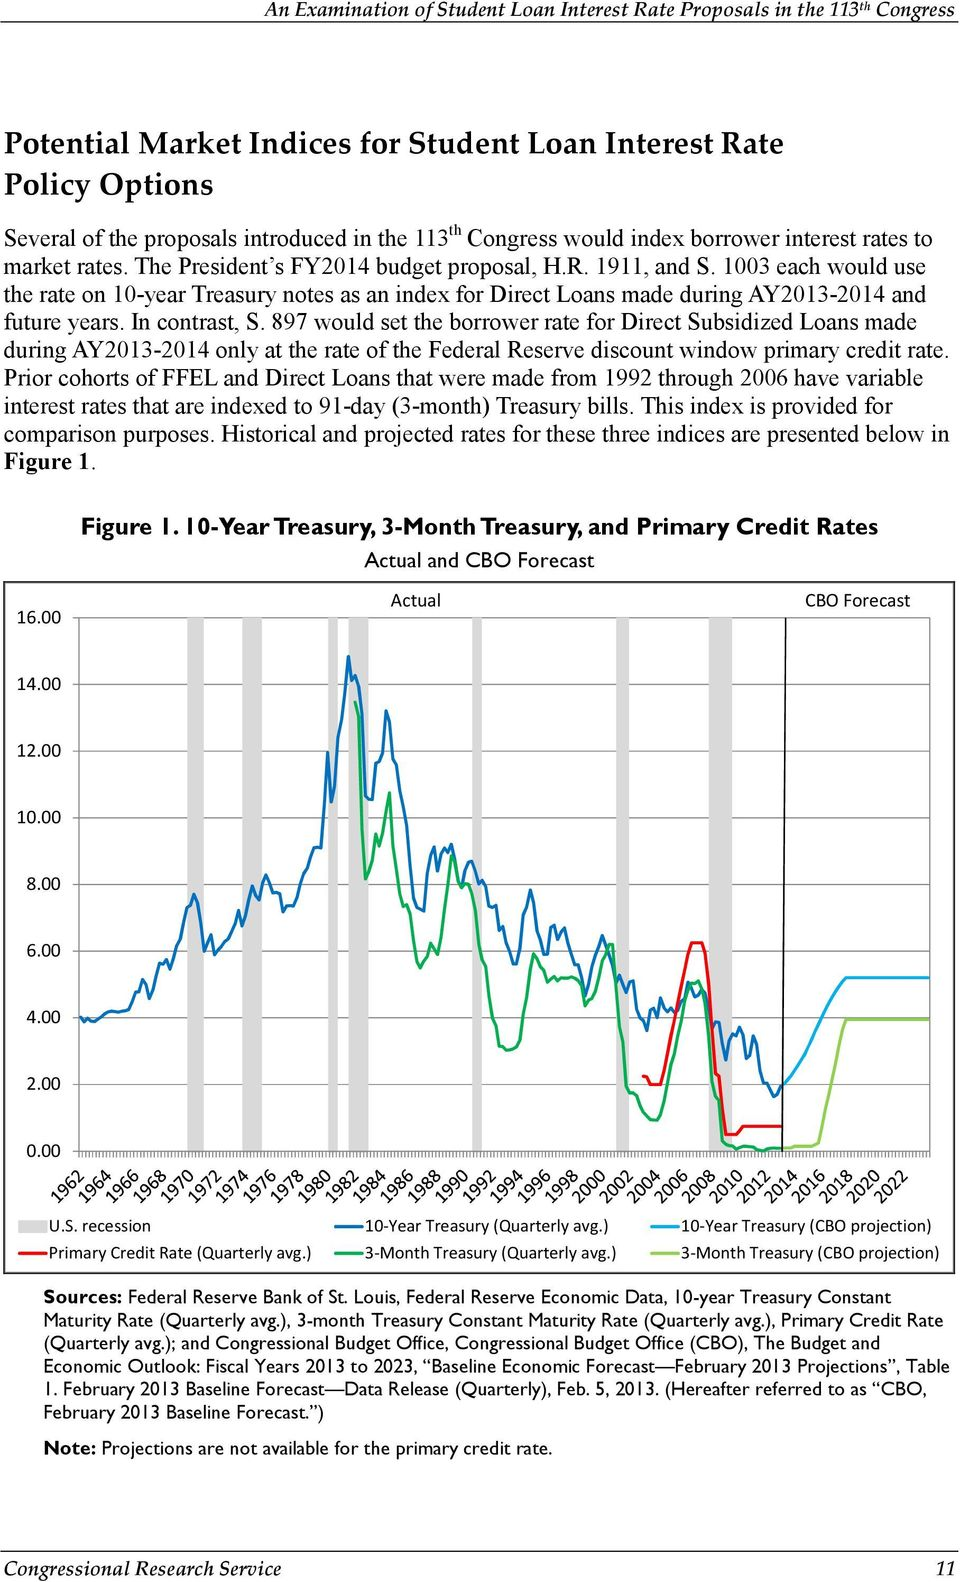 897 would set the borrower rate for Direct Subsidized Loans made during AY2013-2014 only at the rate of the Federal Reserve discount window primary credit rate.